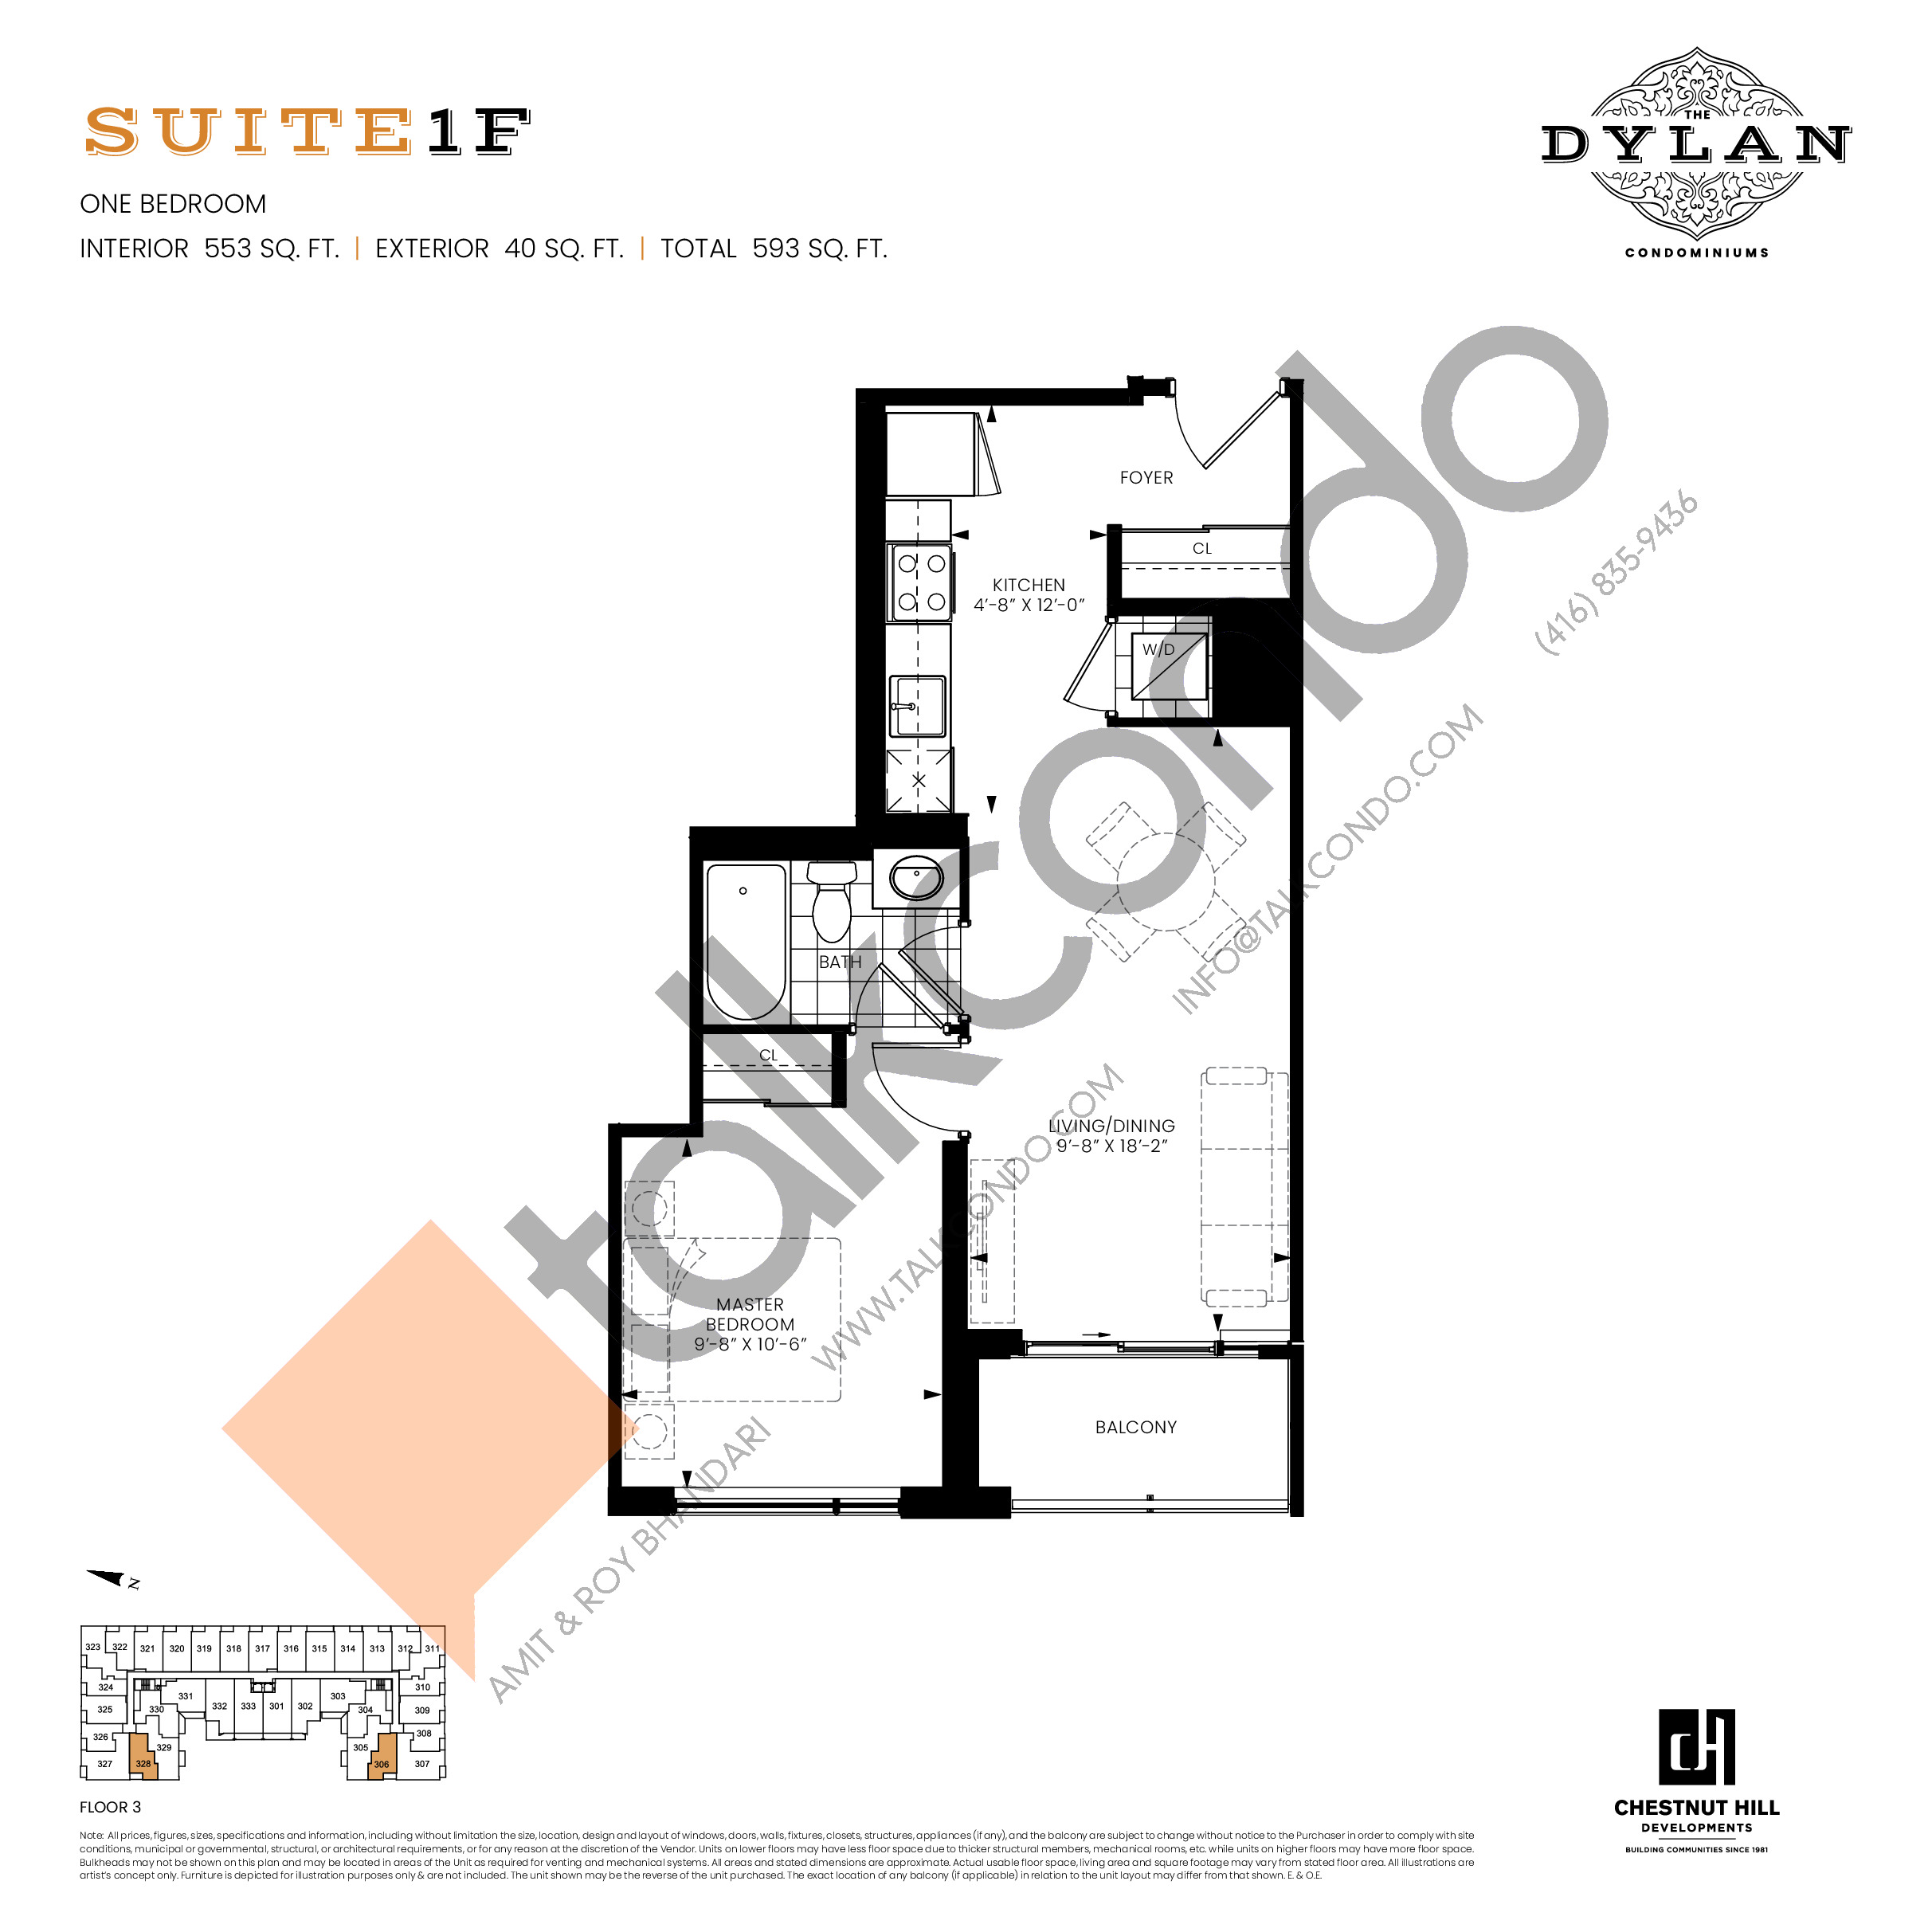 Suite 1F Floor Plan at The Dylan Condos - 553 sq.ft